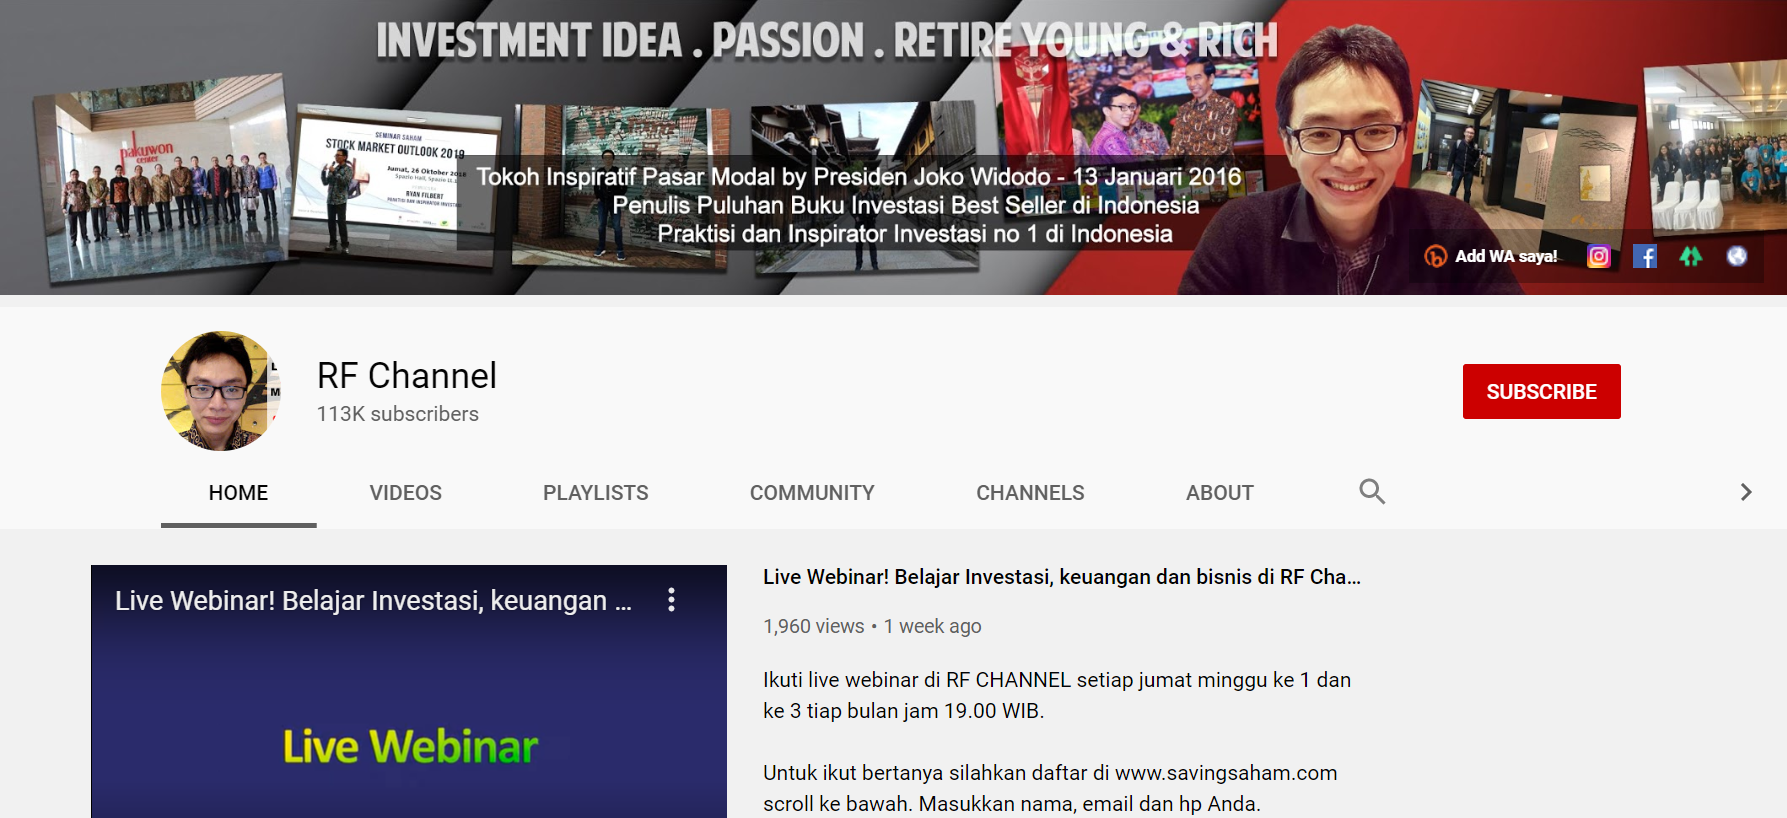 rf channel youtuber membahas investasi